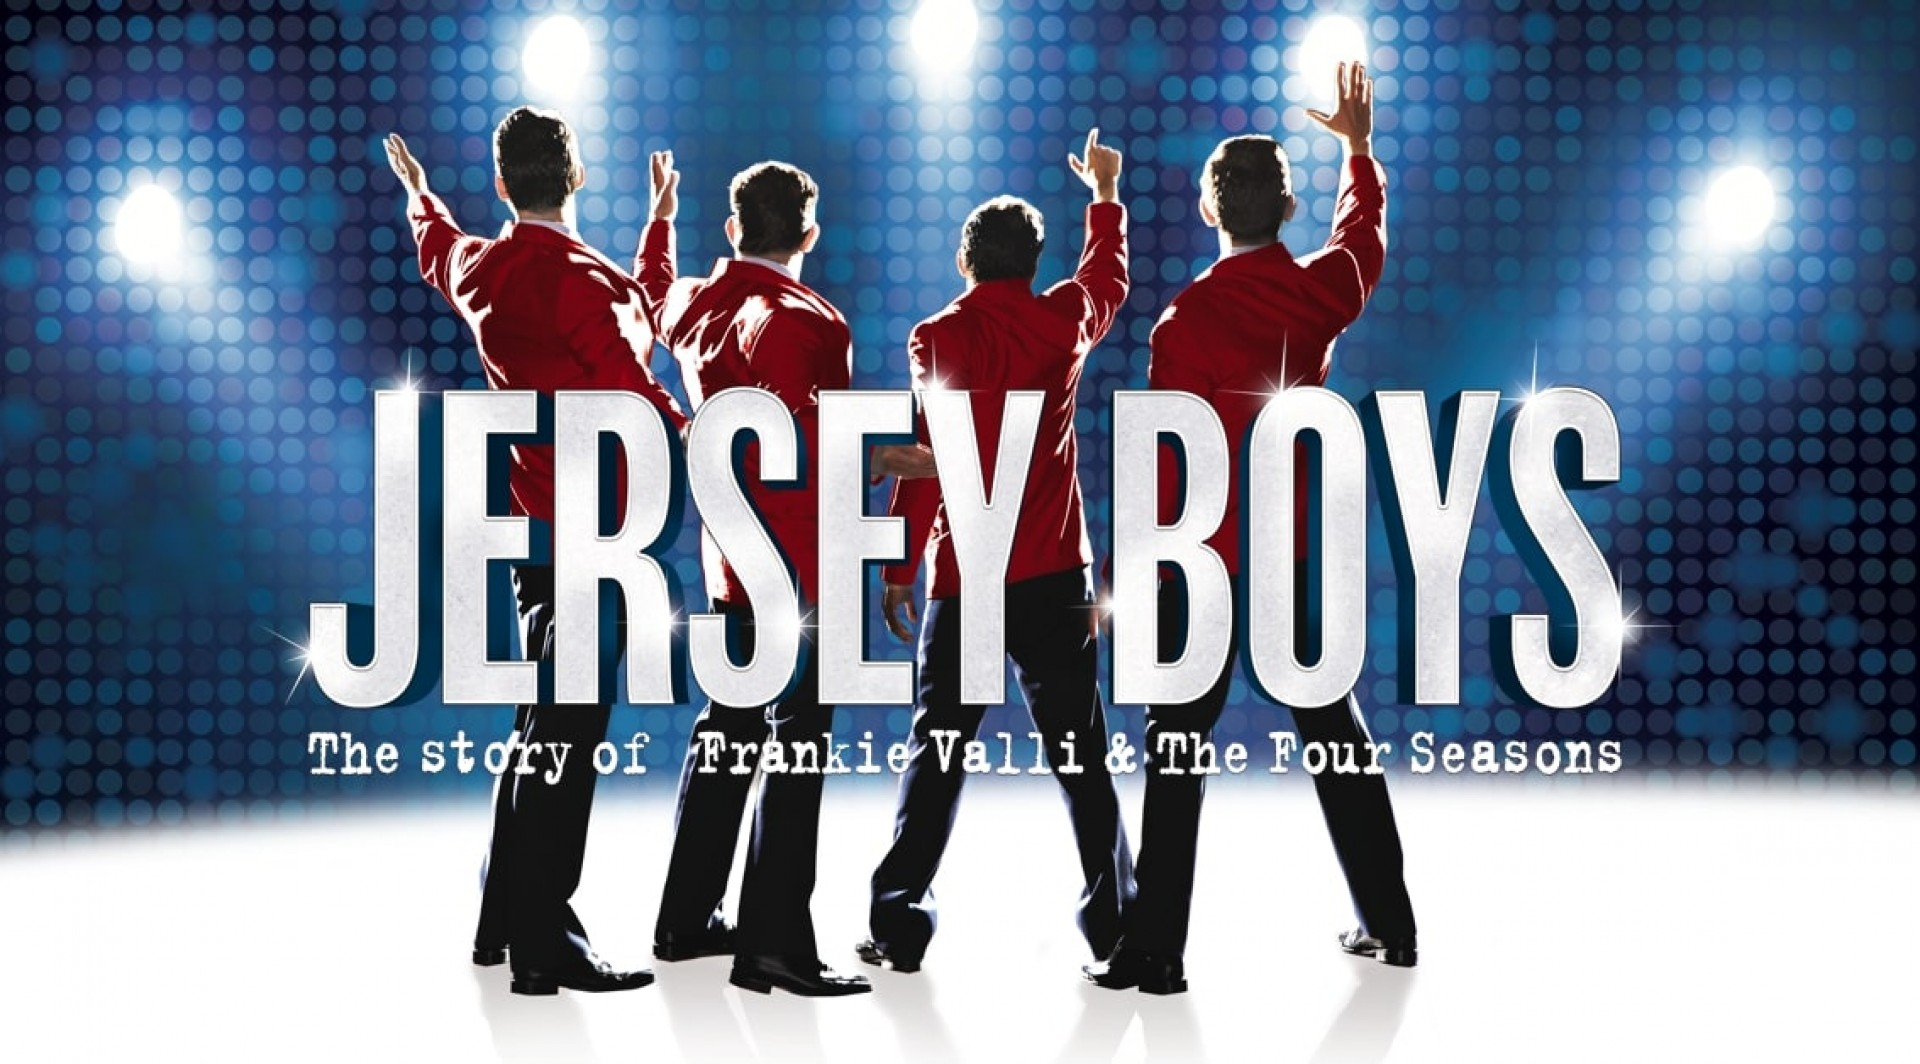 Jersey Boys – The Story of Frankie Valli & The Four Seasons